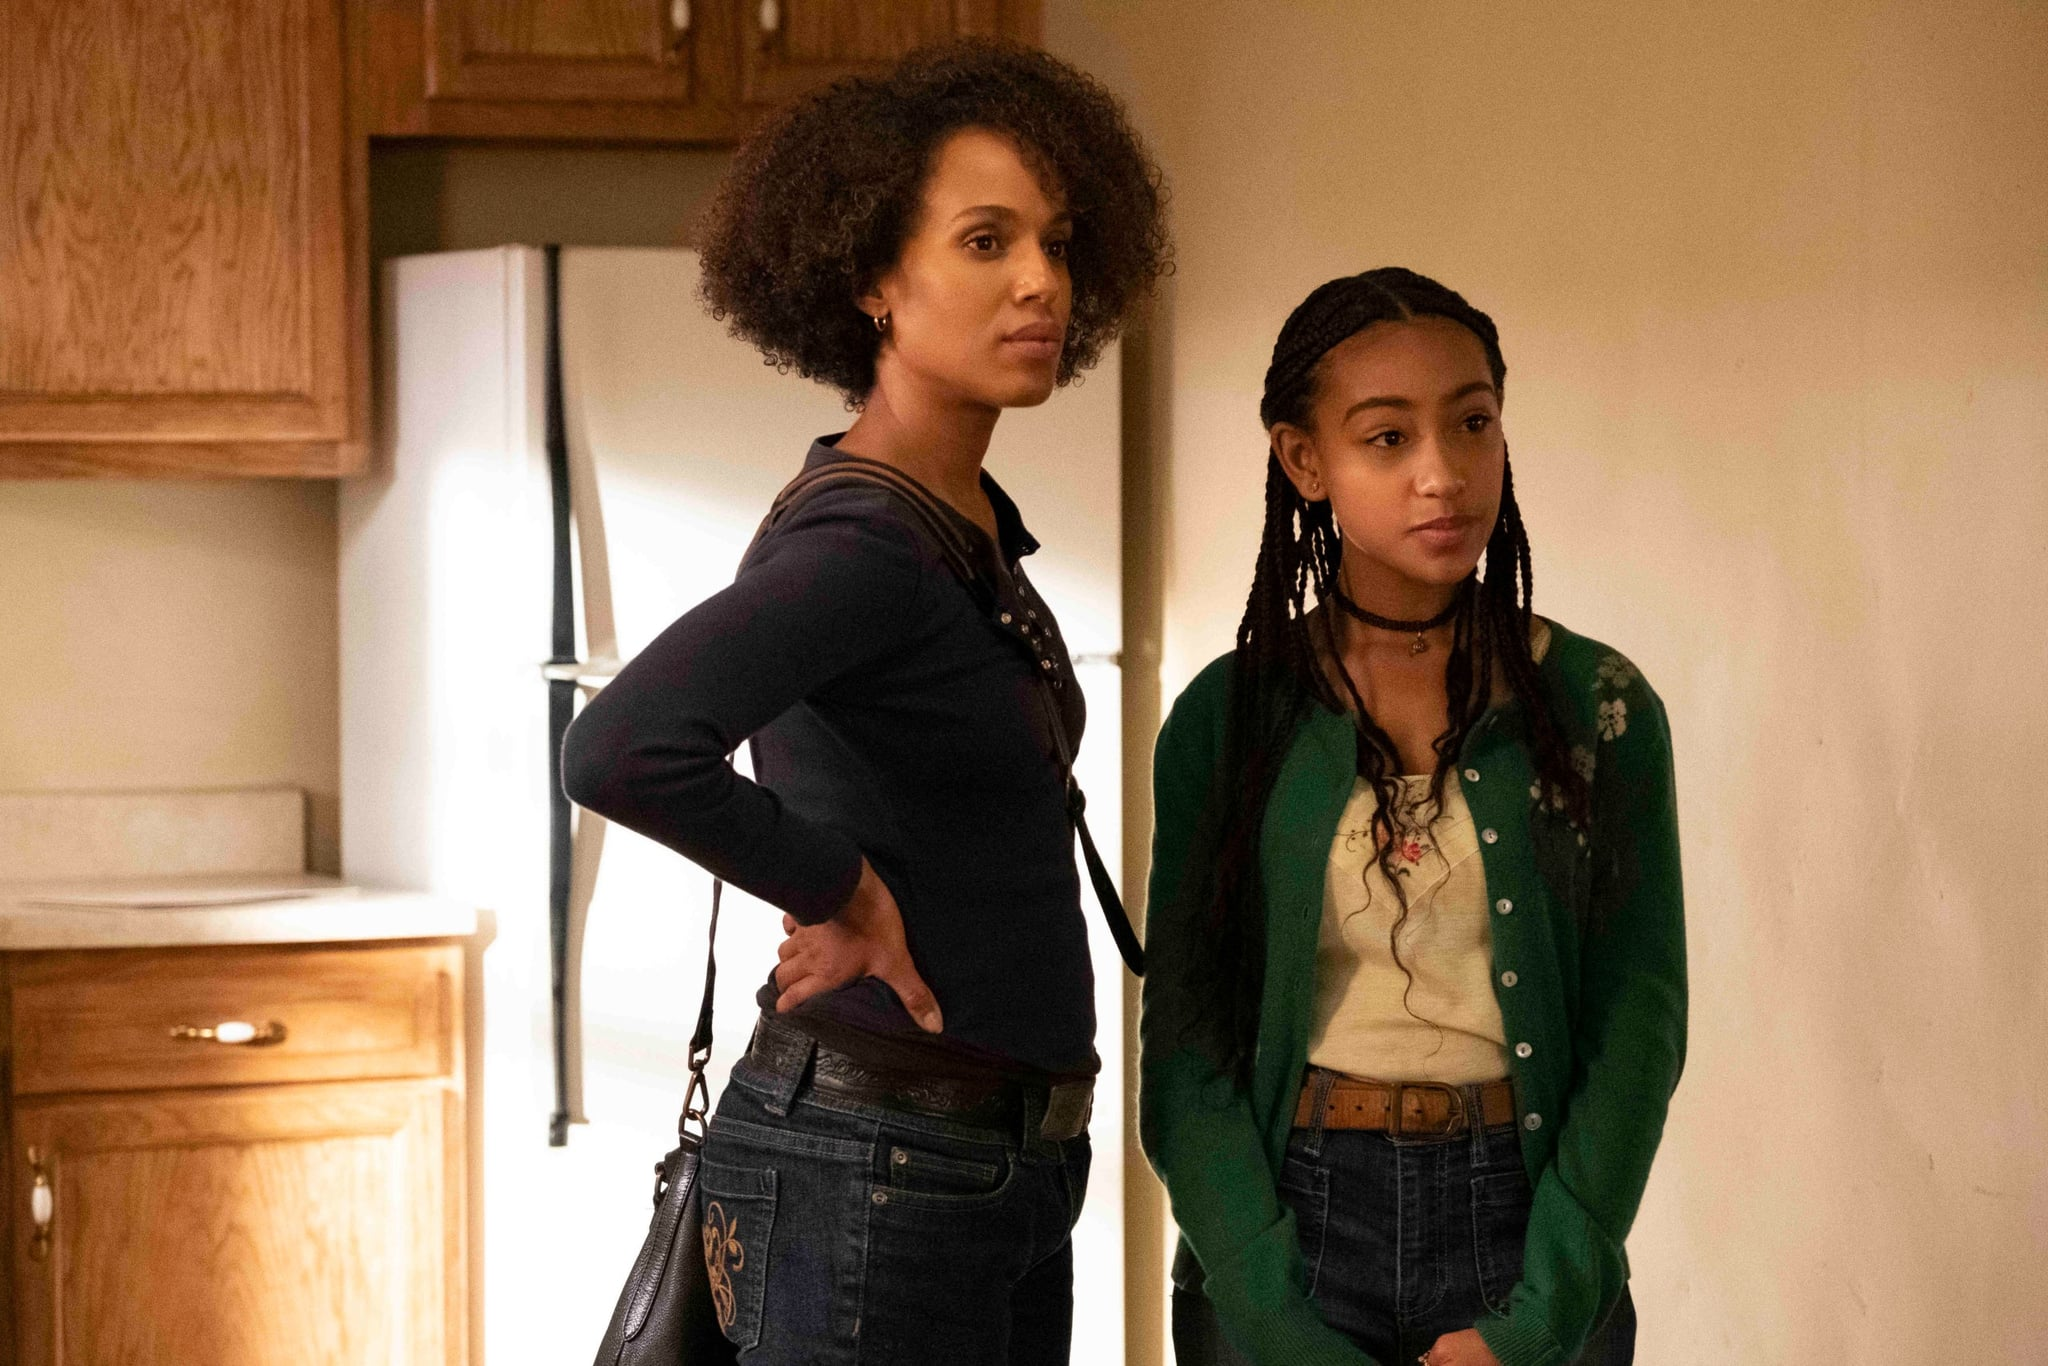 LITTLE FIRES EVERYWHERE, from left: Kerry Washington, Lexi Underwood, The Spark, (Season 1, ep. 101, aired Mar. 18, 2020). photo: Erin Simkin / Hulu / Courtesy Everett Collection